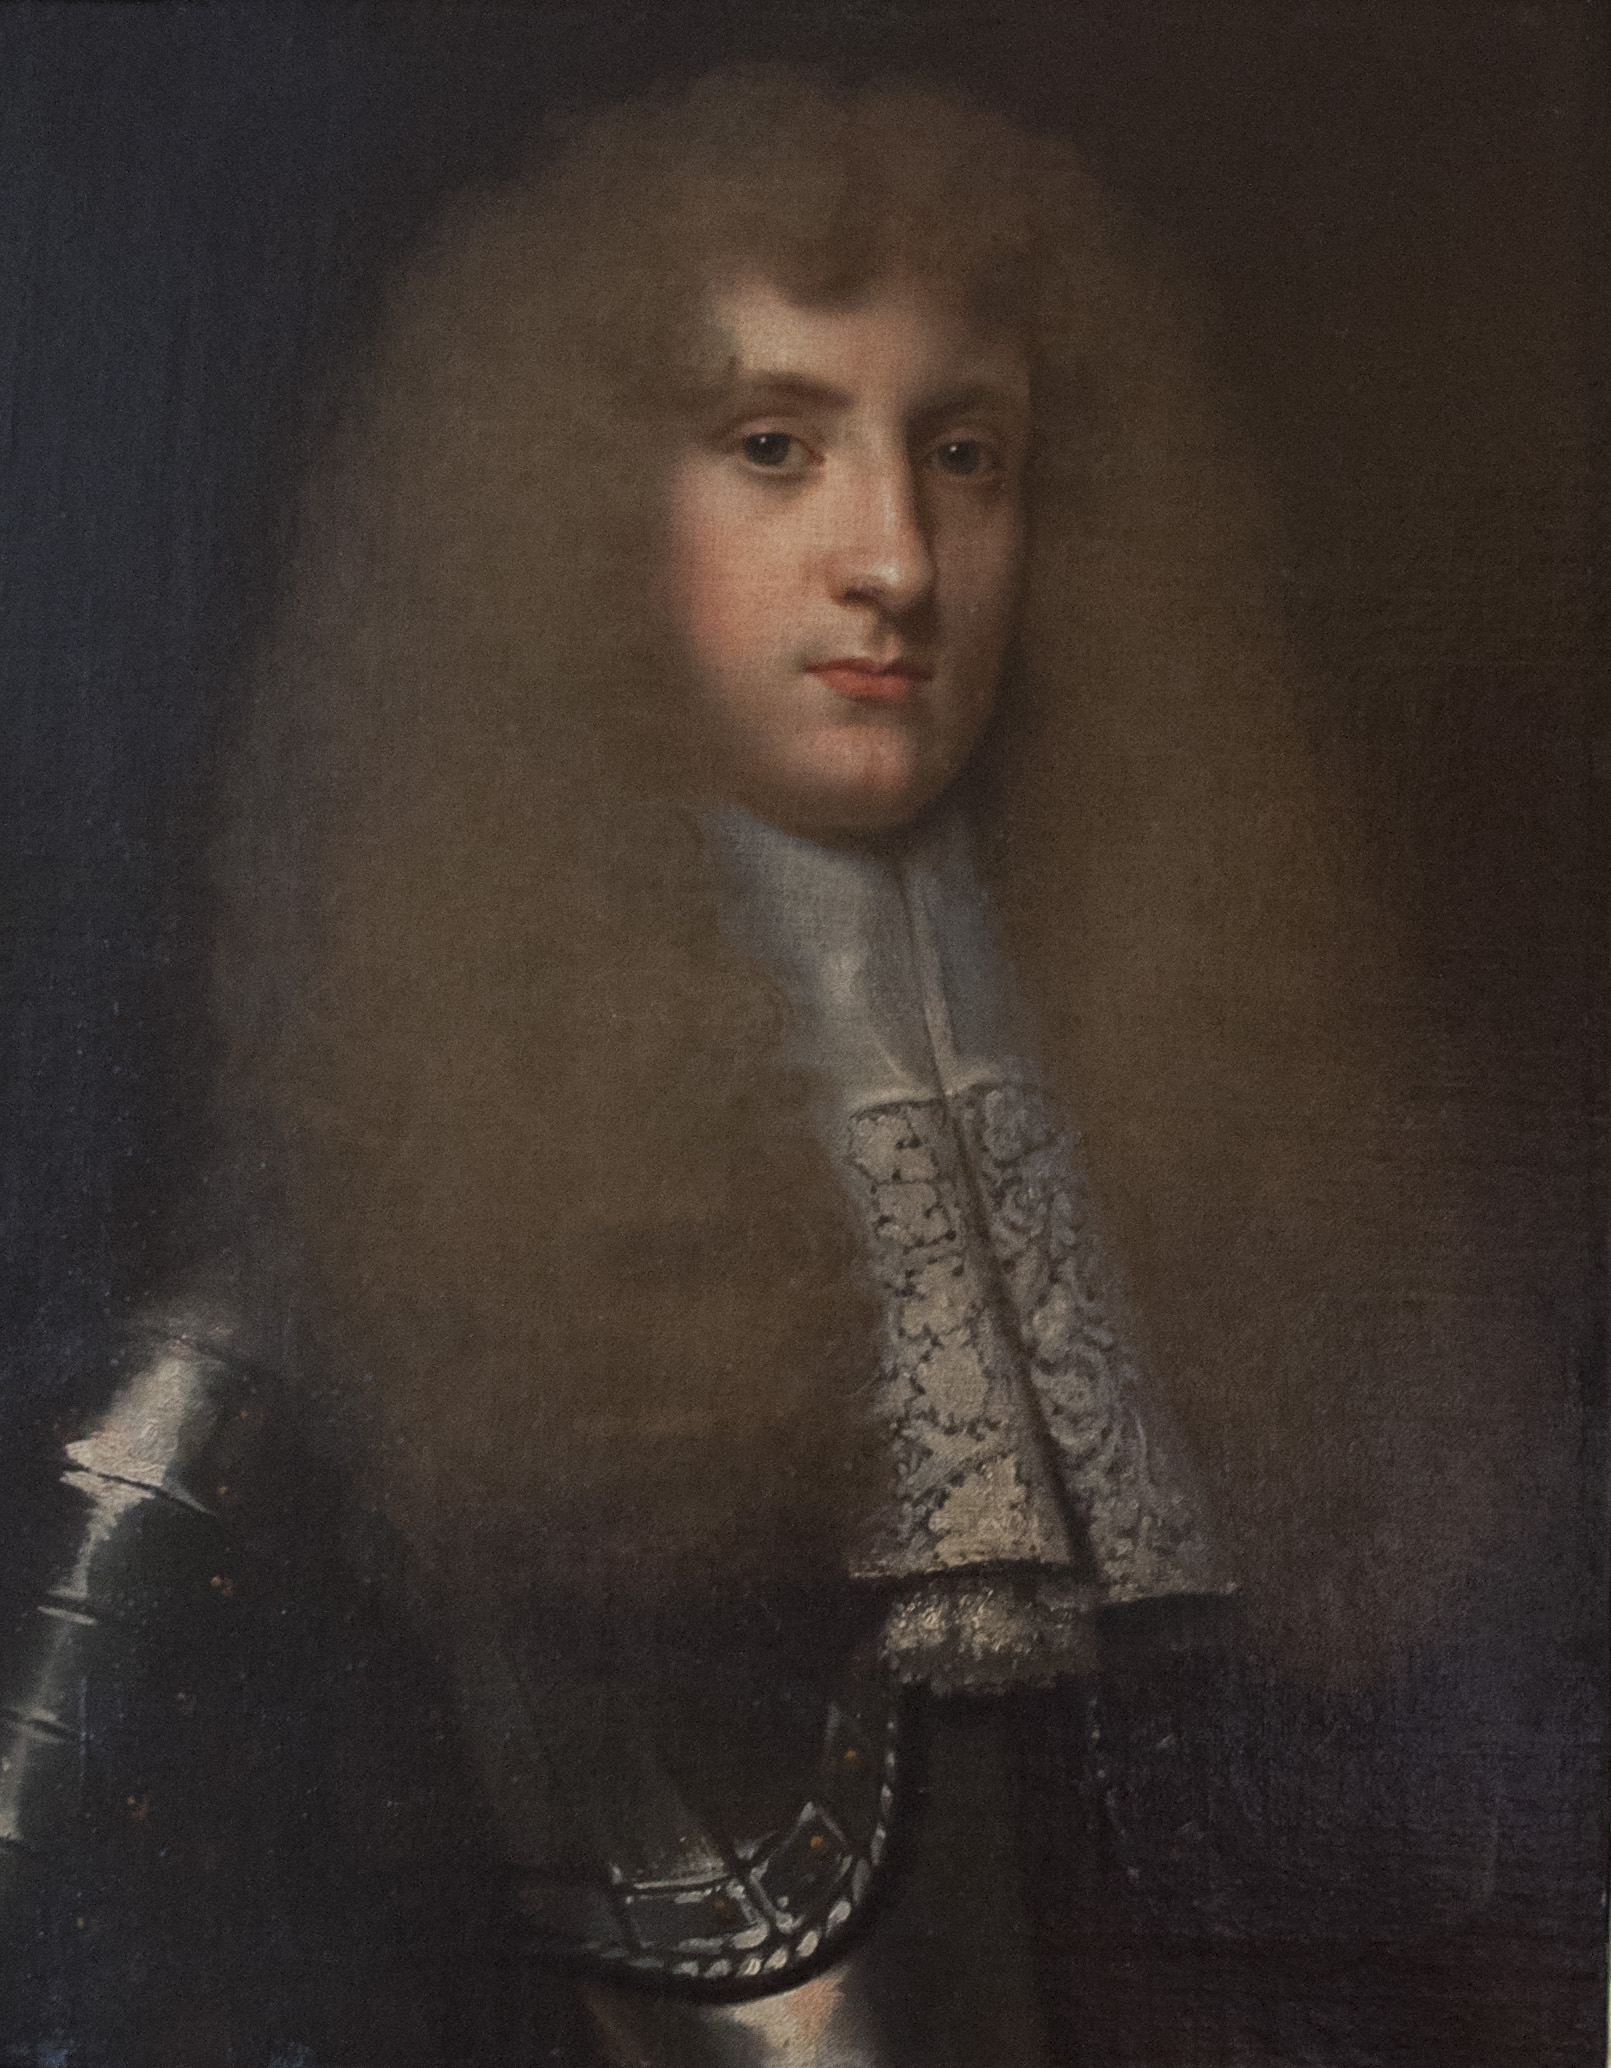 Portrait of William, Lord Russell by Theodore Russell. Weston Park Collection 101.0313